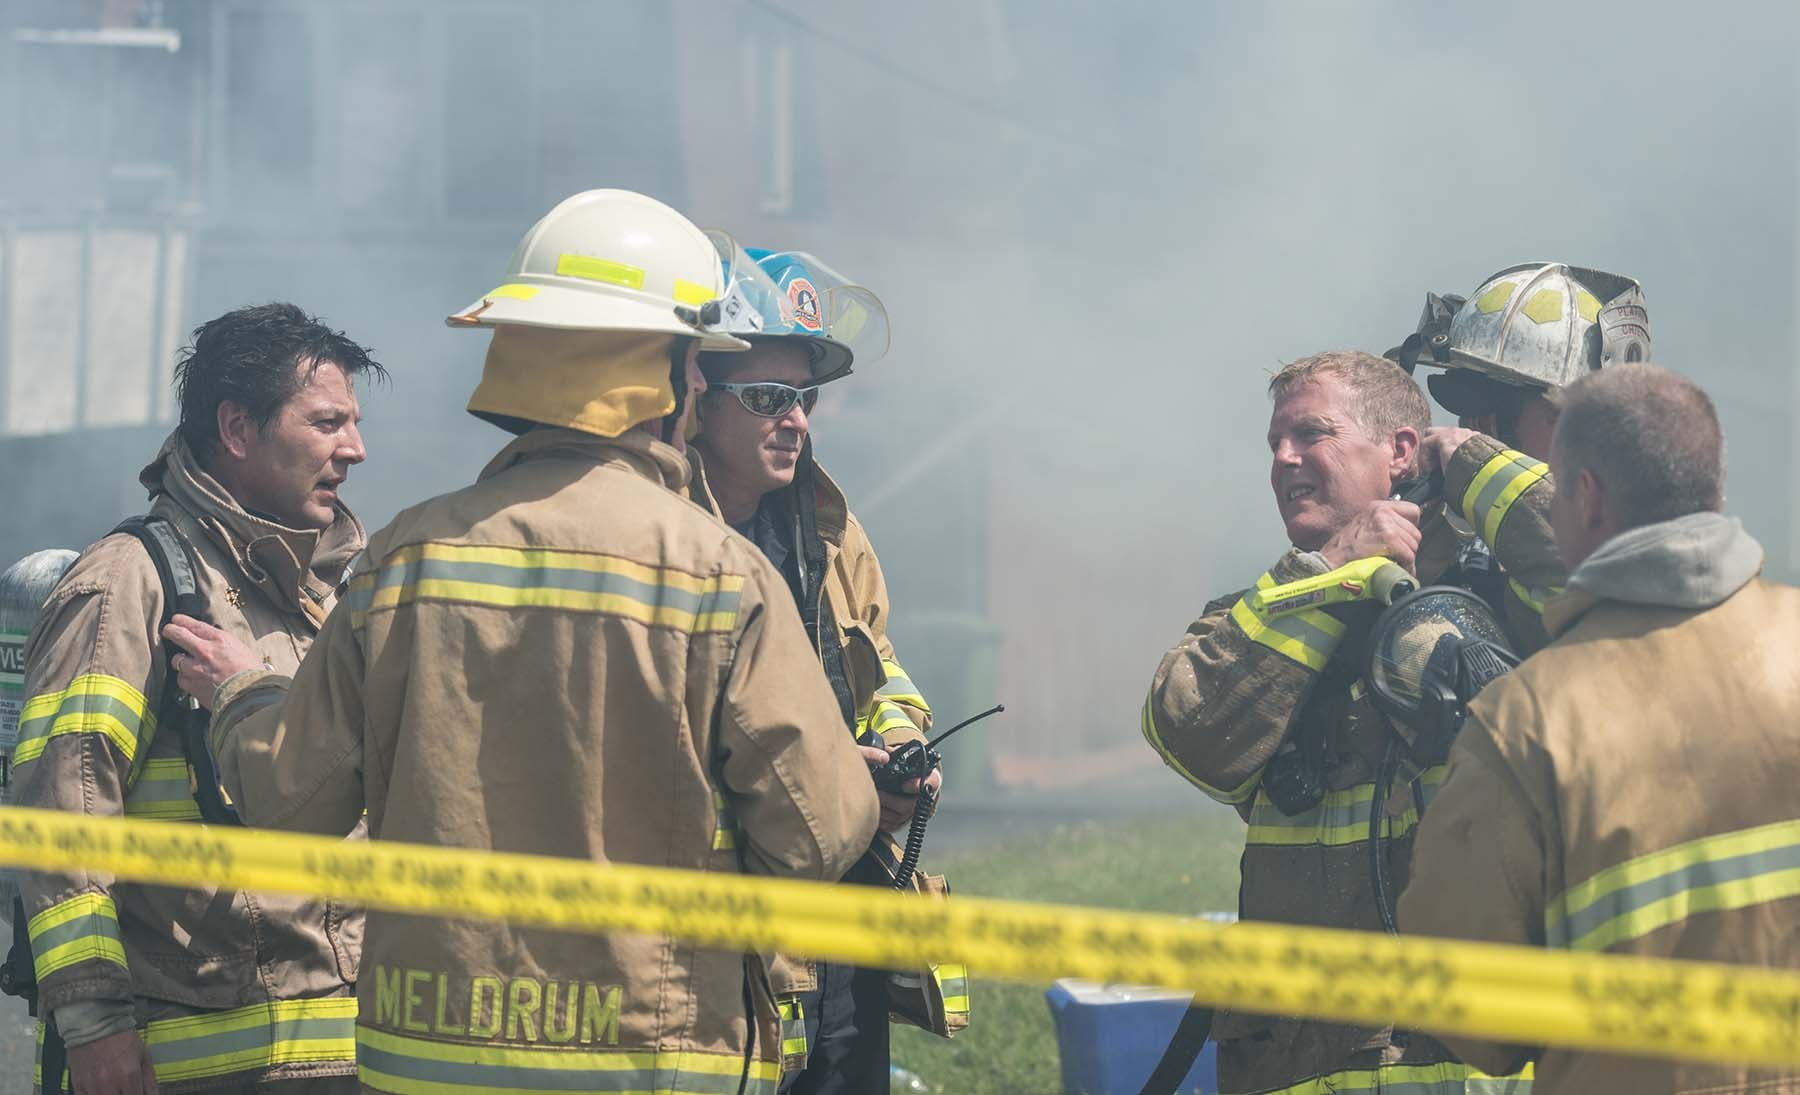 firefighter discussion at the scene of a fire